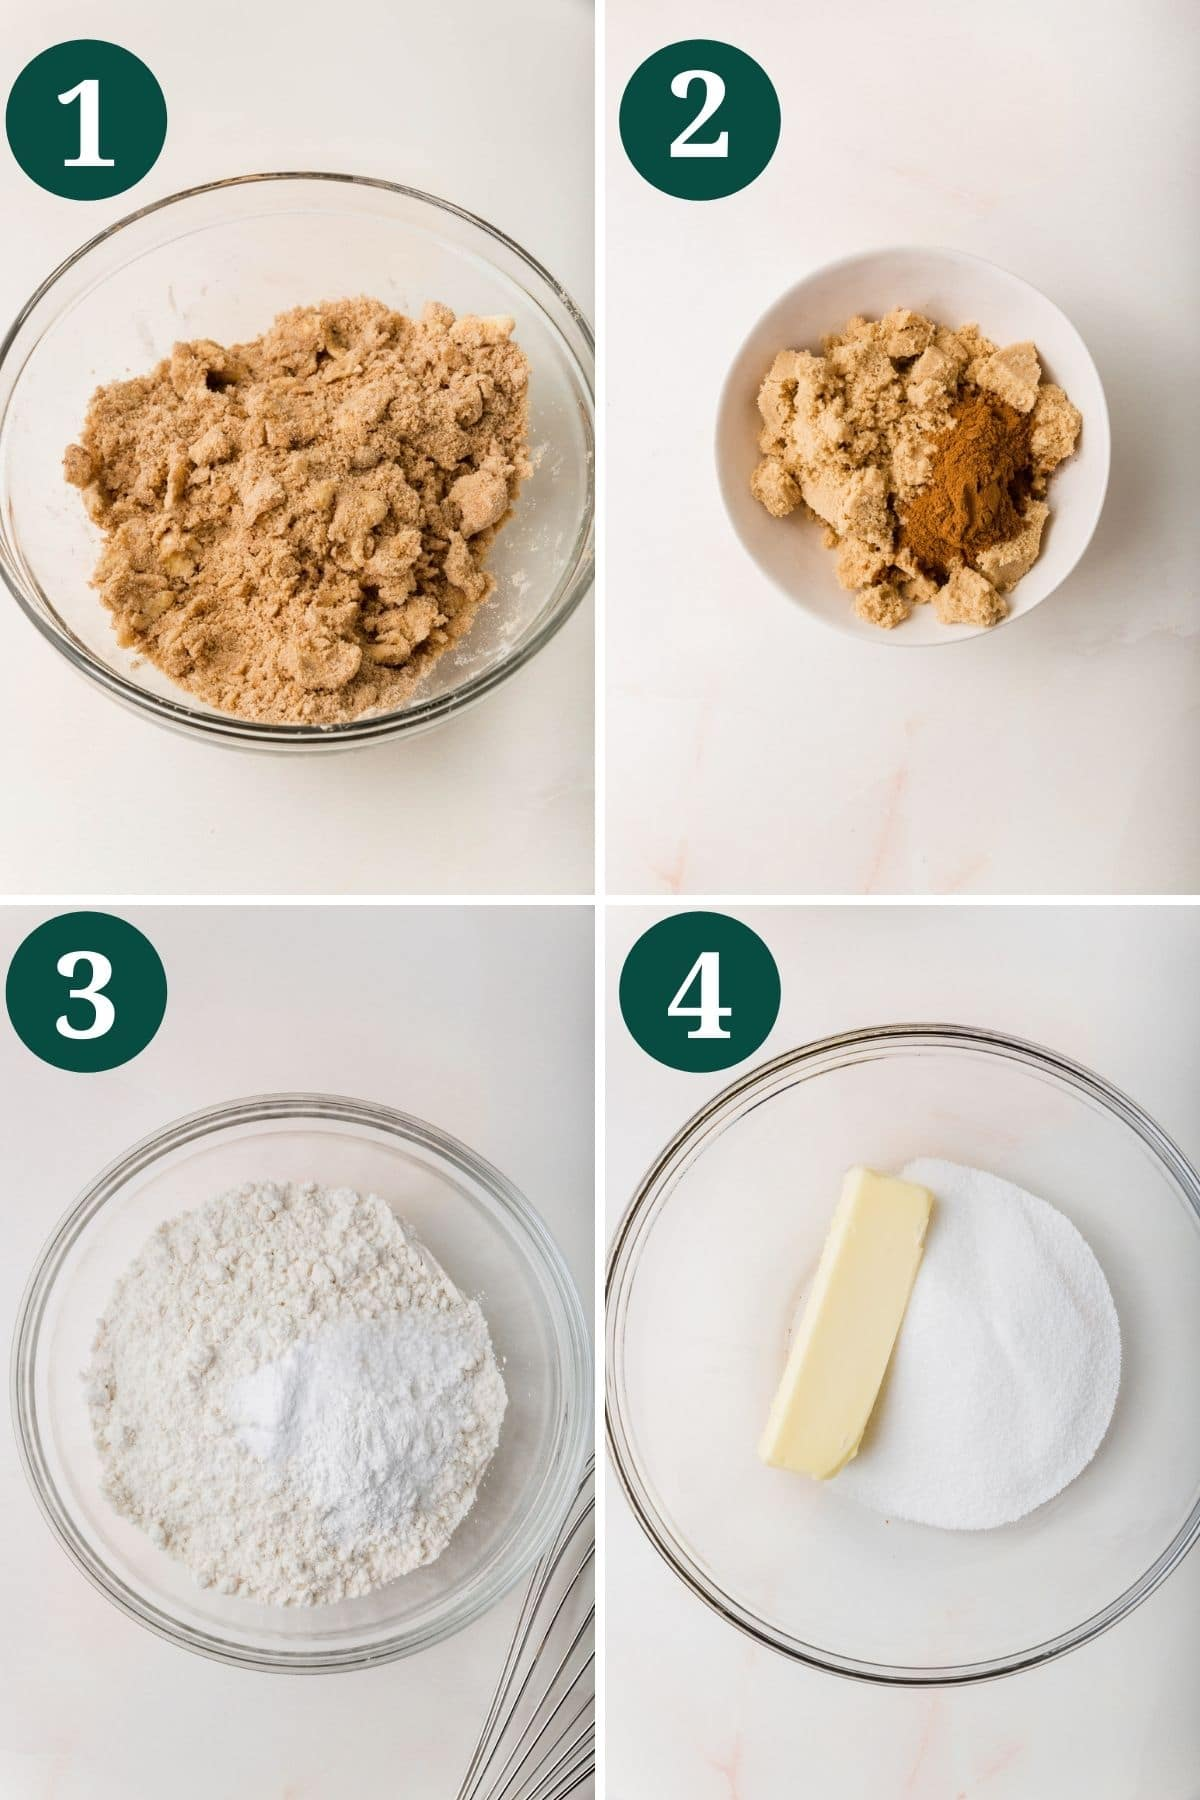 A collage of photos showing the process for making cinnamon coffee cake with gluten-free flour.